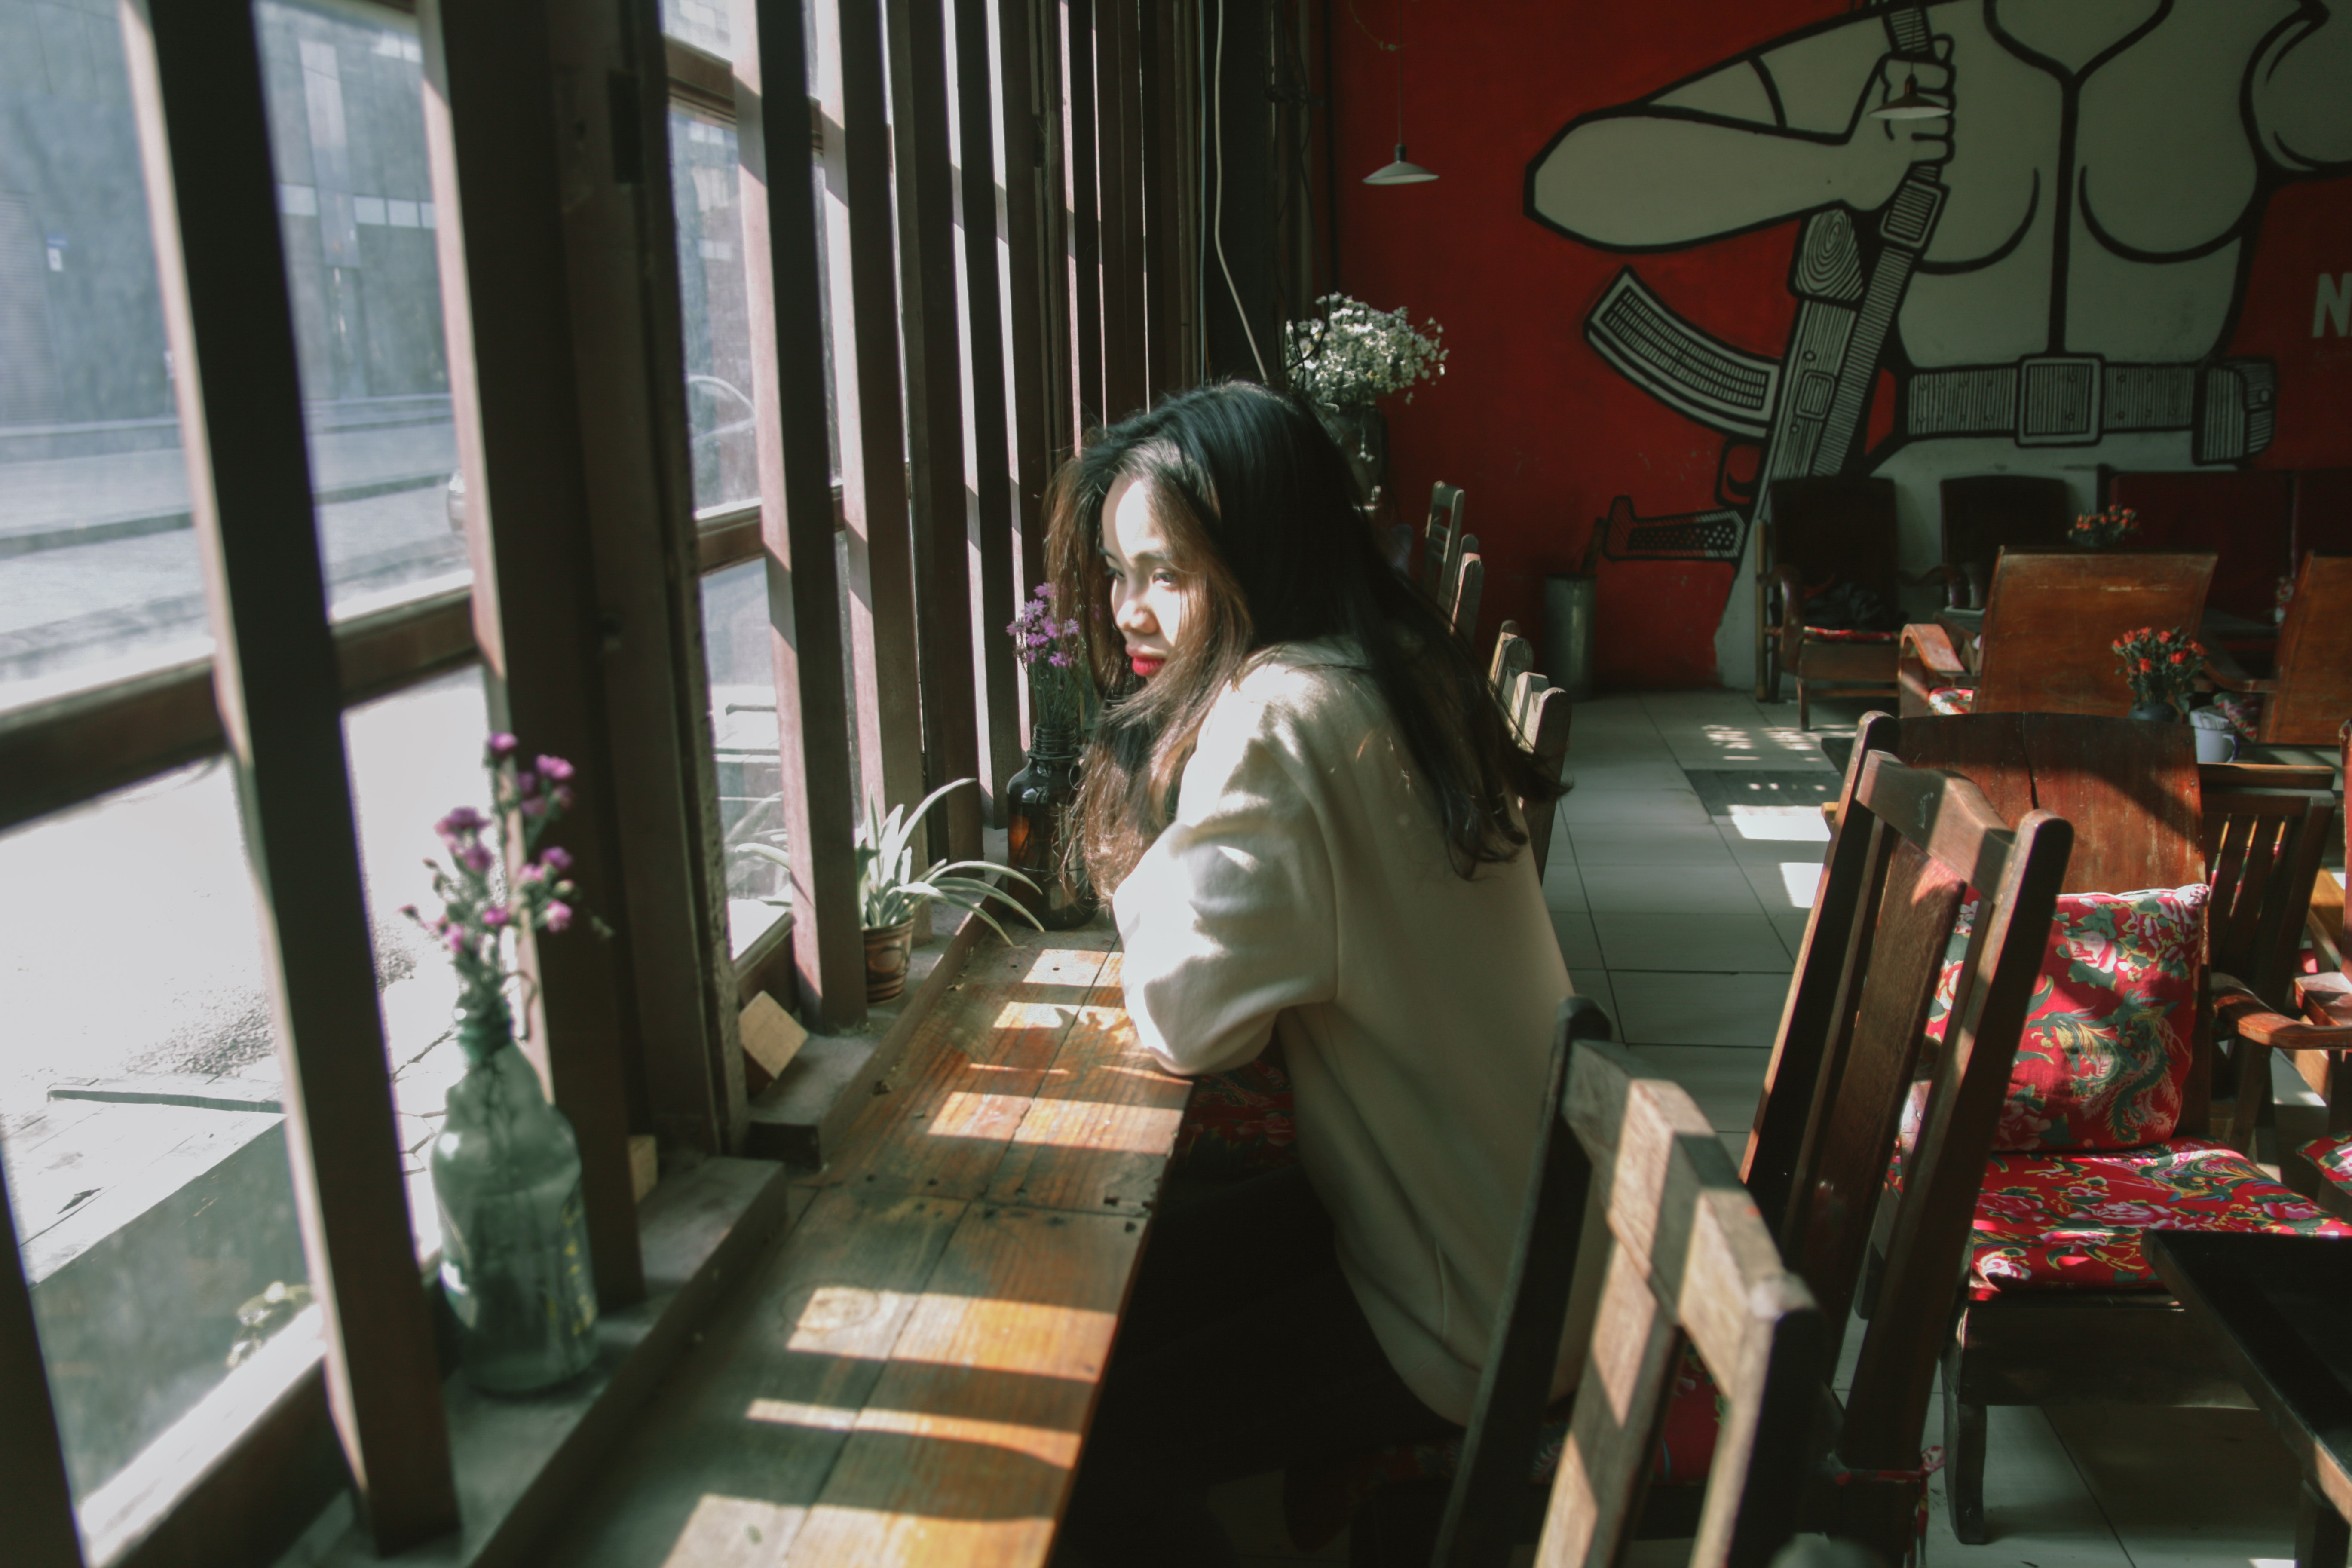 Woman Sitting on Chair Leaning on Table and on Facing Window, Looking, Woman, Windows, Wear, HQ Photo